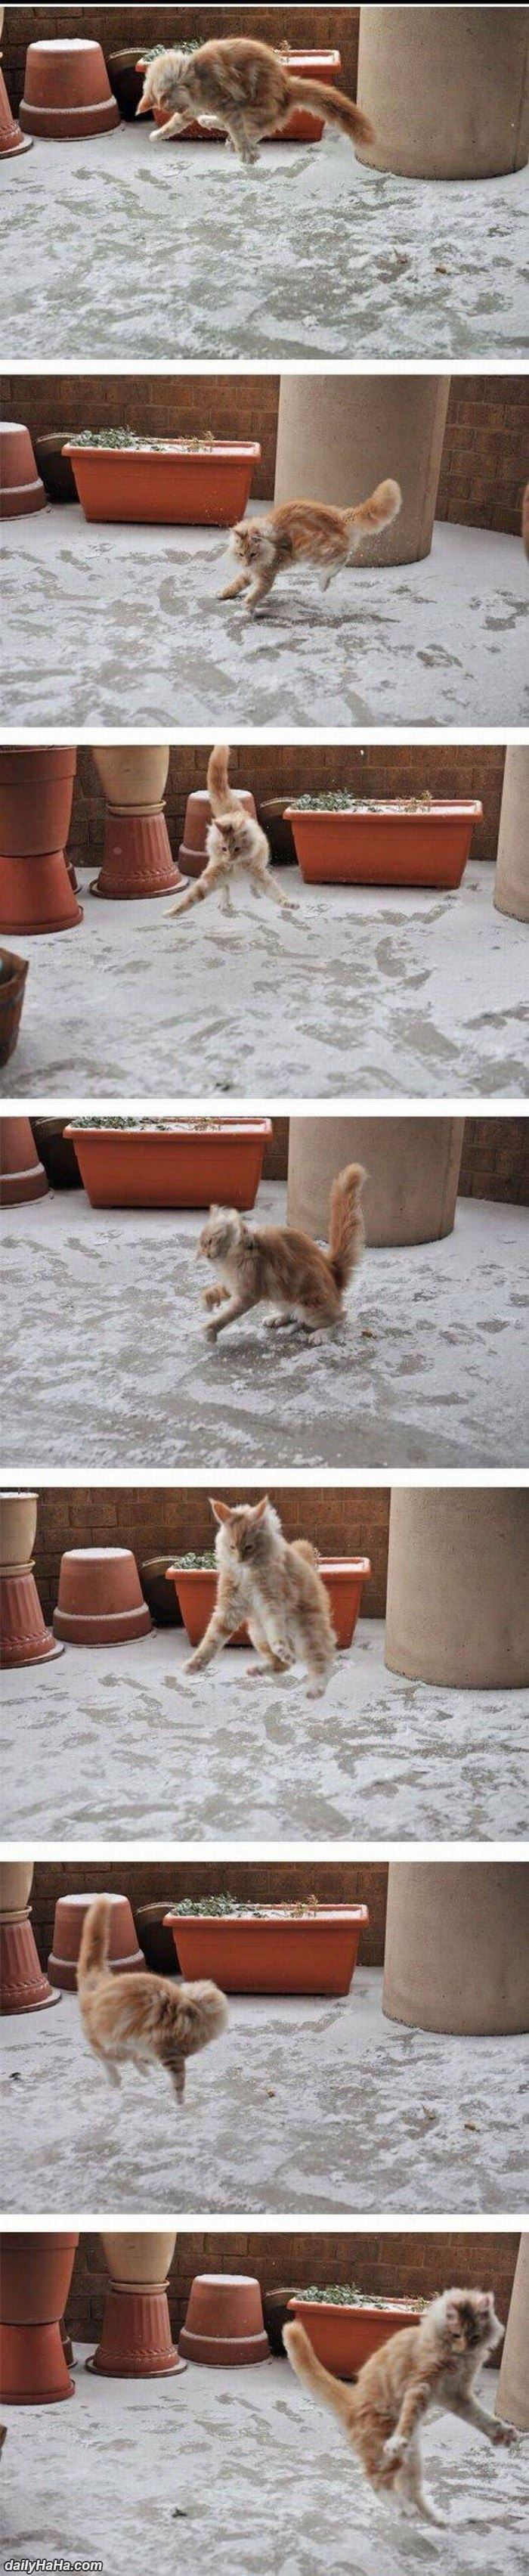 this cat playing in the snow funny picture